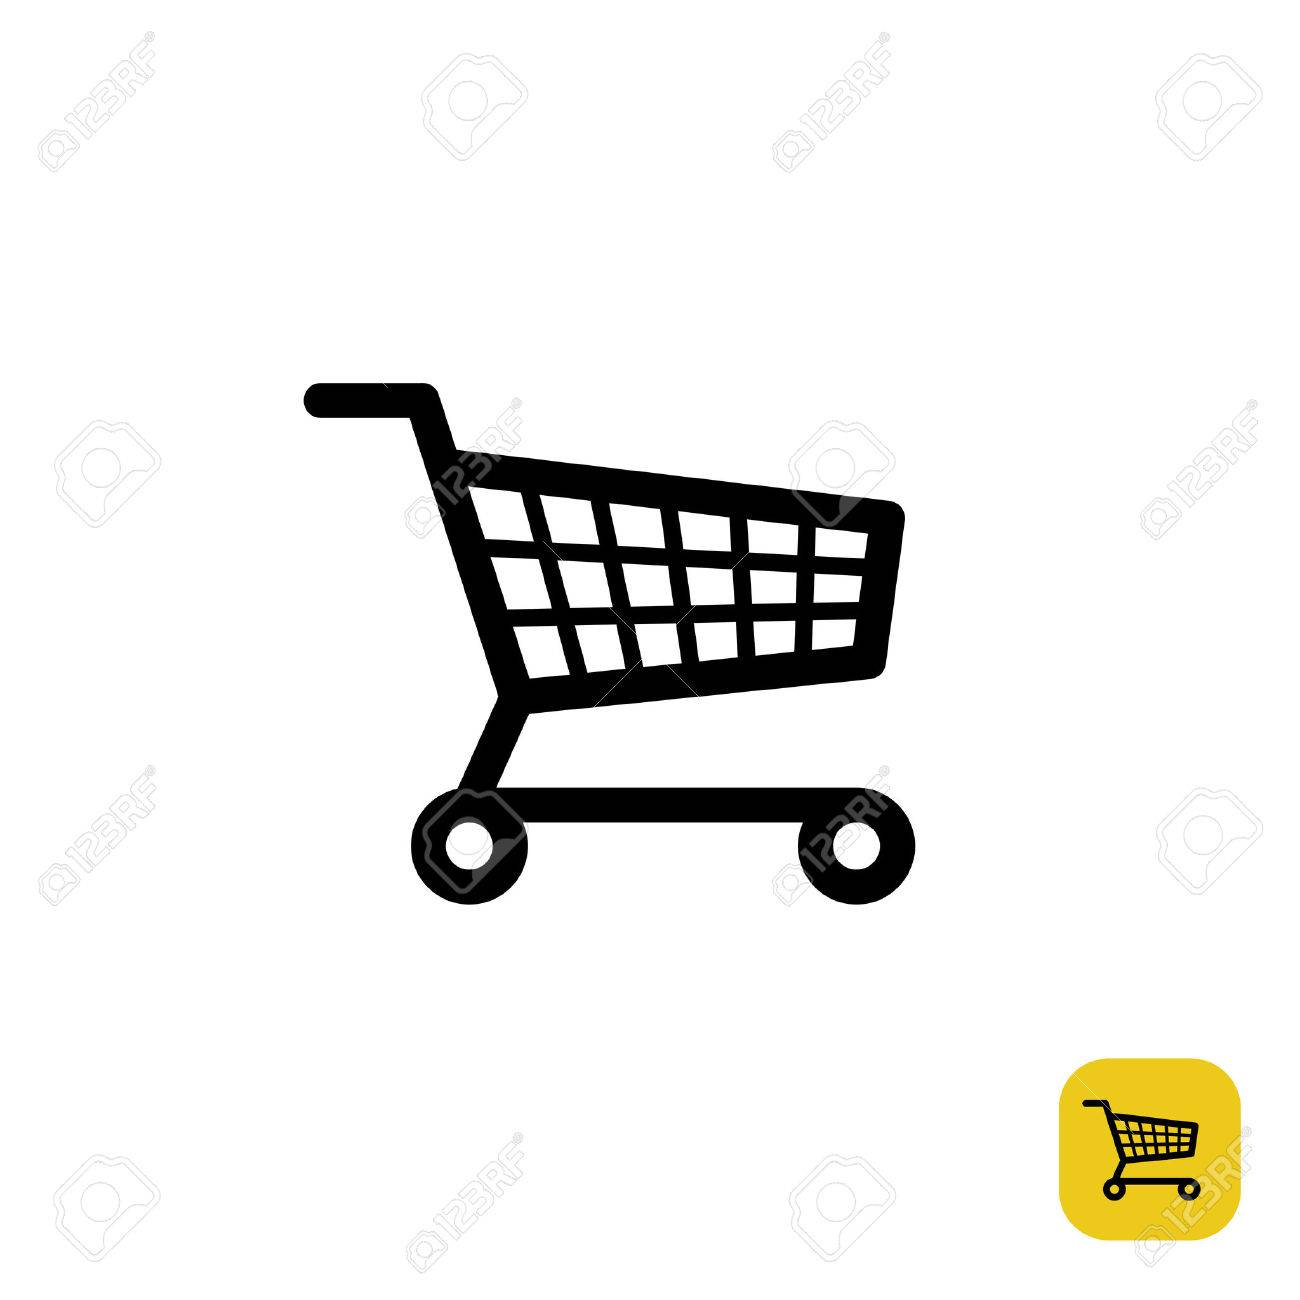 Shopping cart simple black sign - 47974454